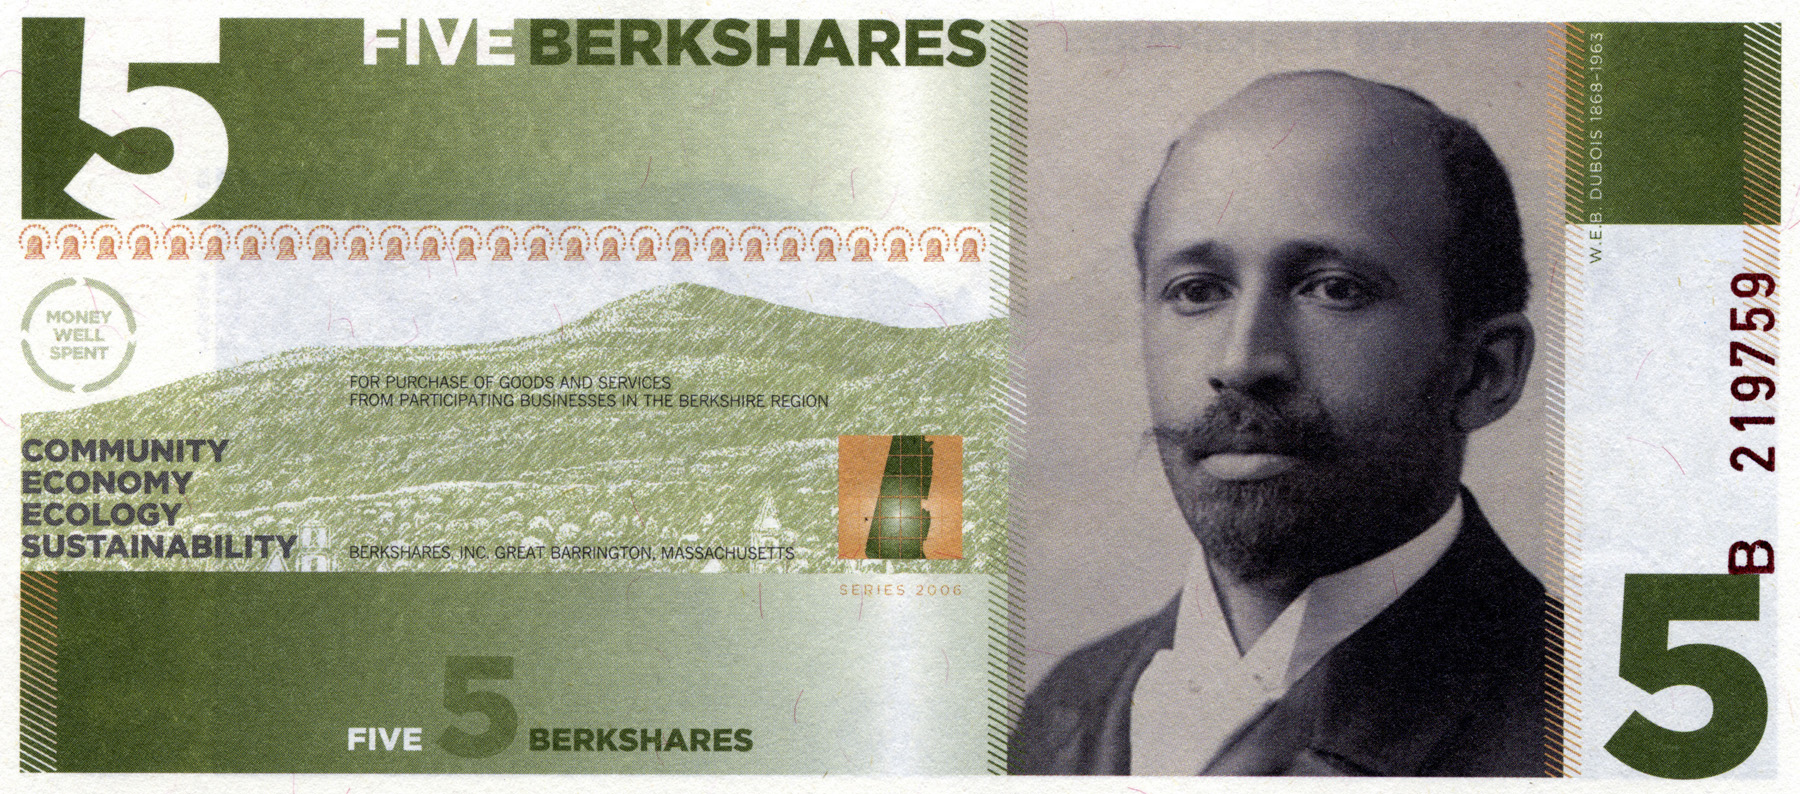 The Berkshare, used since 2006, is denominated between 1 and 50.Change less than $1 has to be made using US coins. Photo credit: changemakers.com [177]